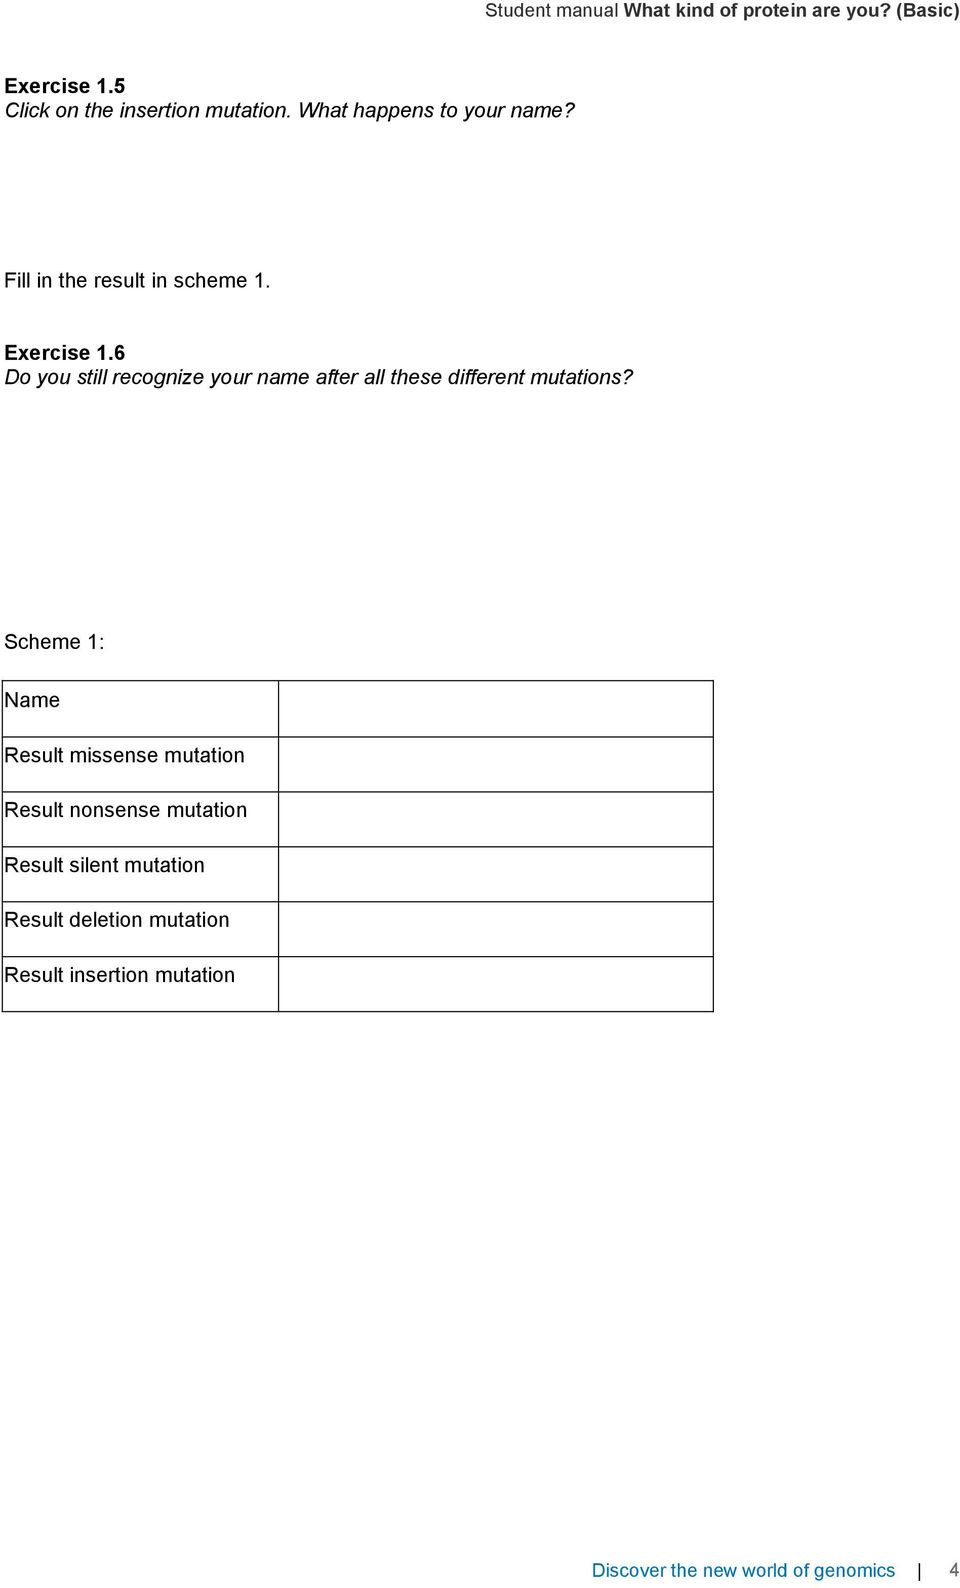 Gene and Chromosome Mutation Worksheet Concluding Lesson Student Manual What Kind Of Protein are